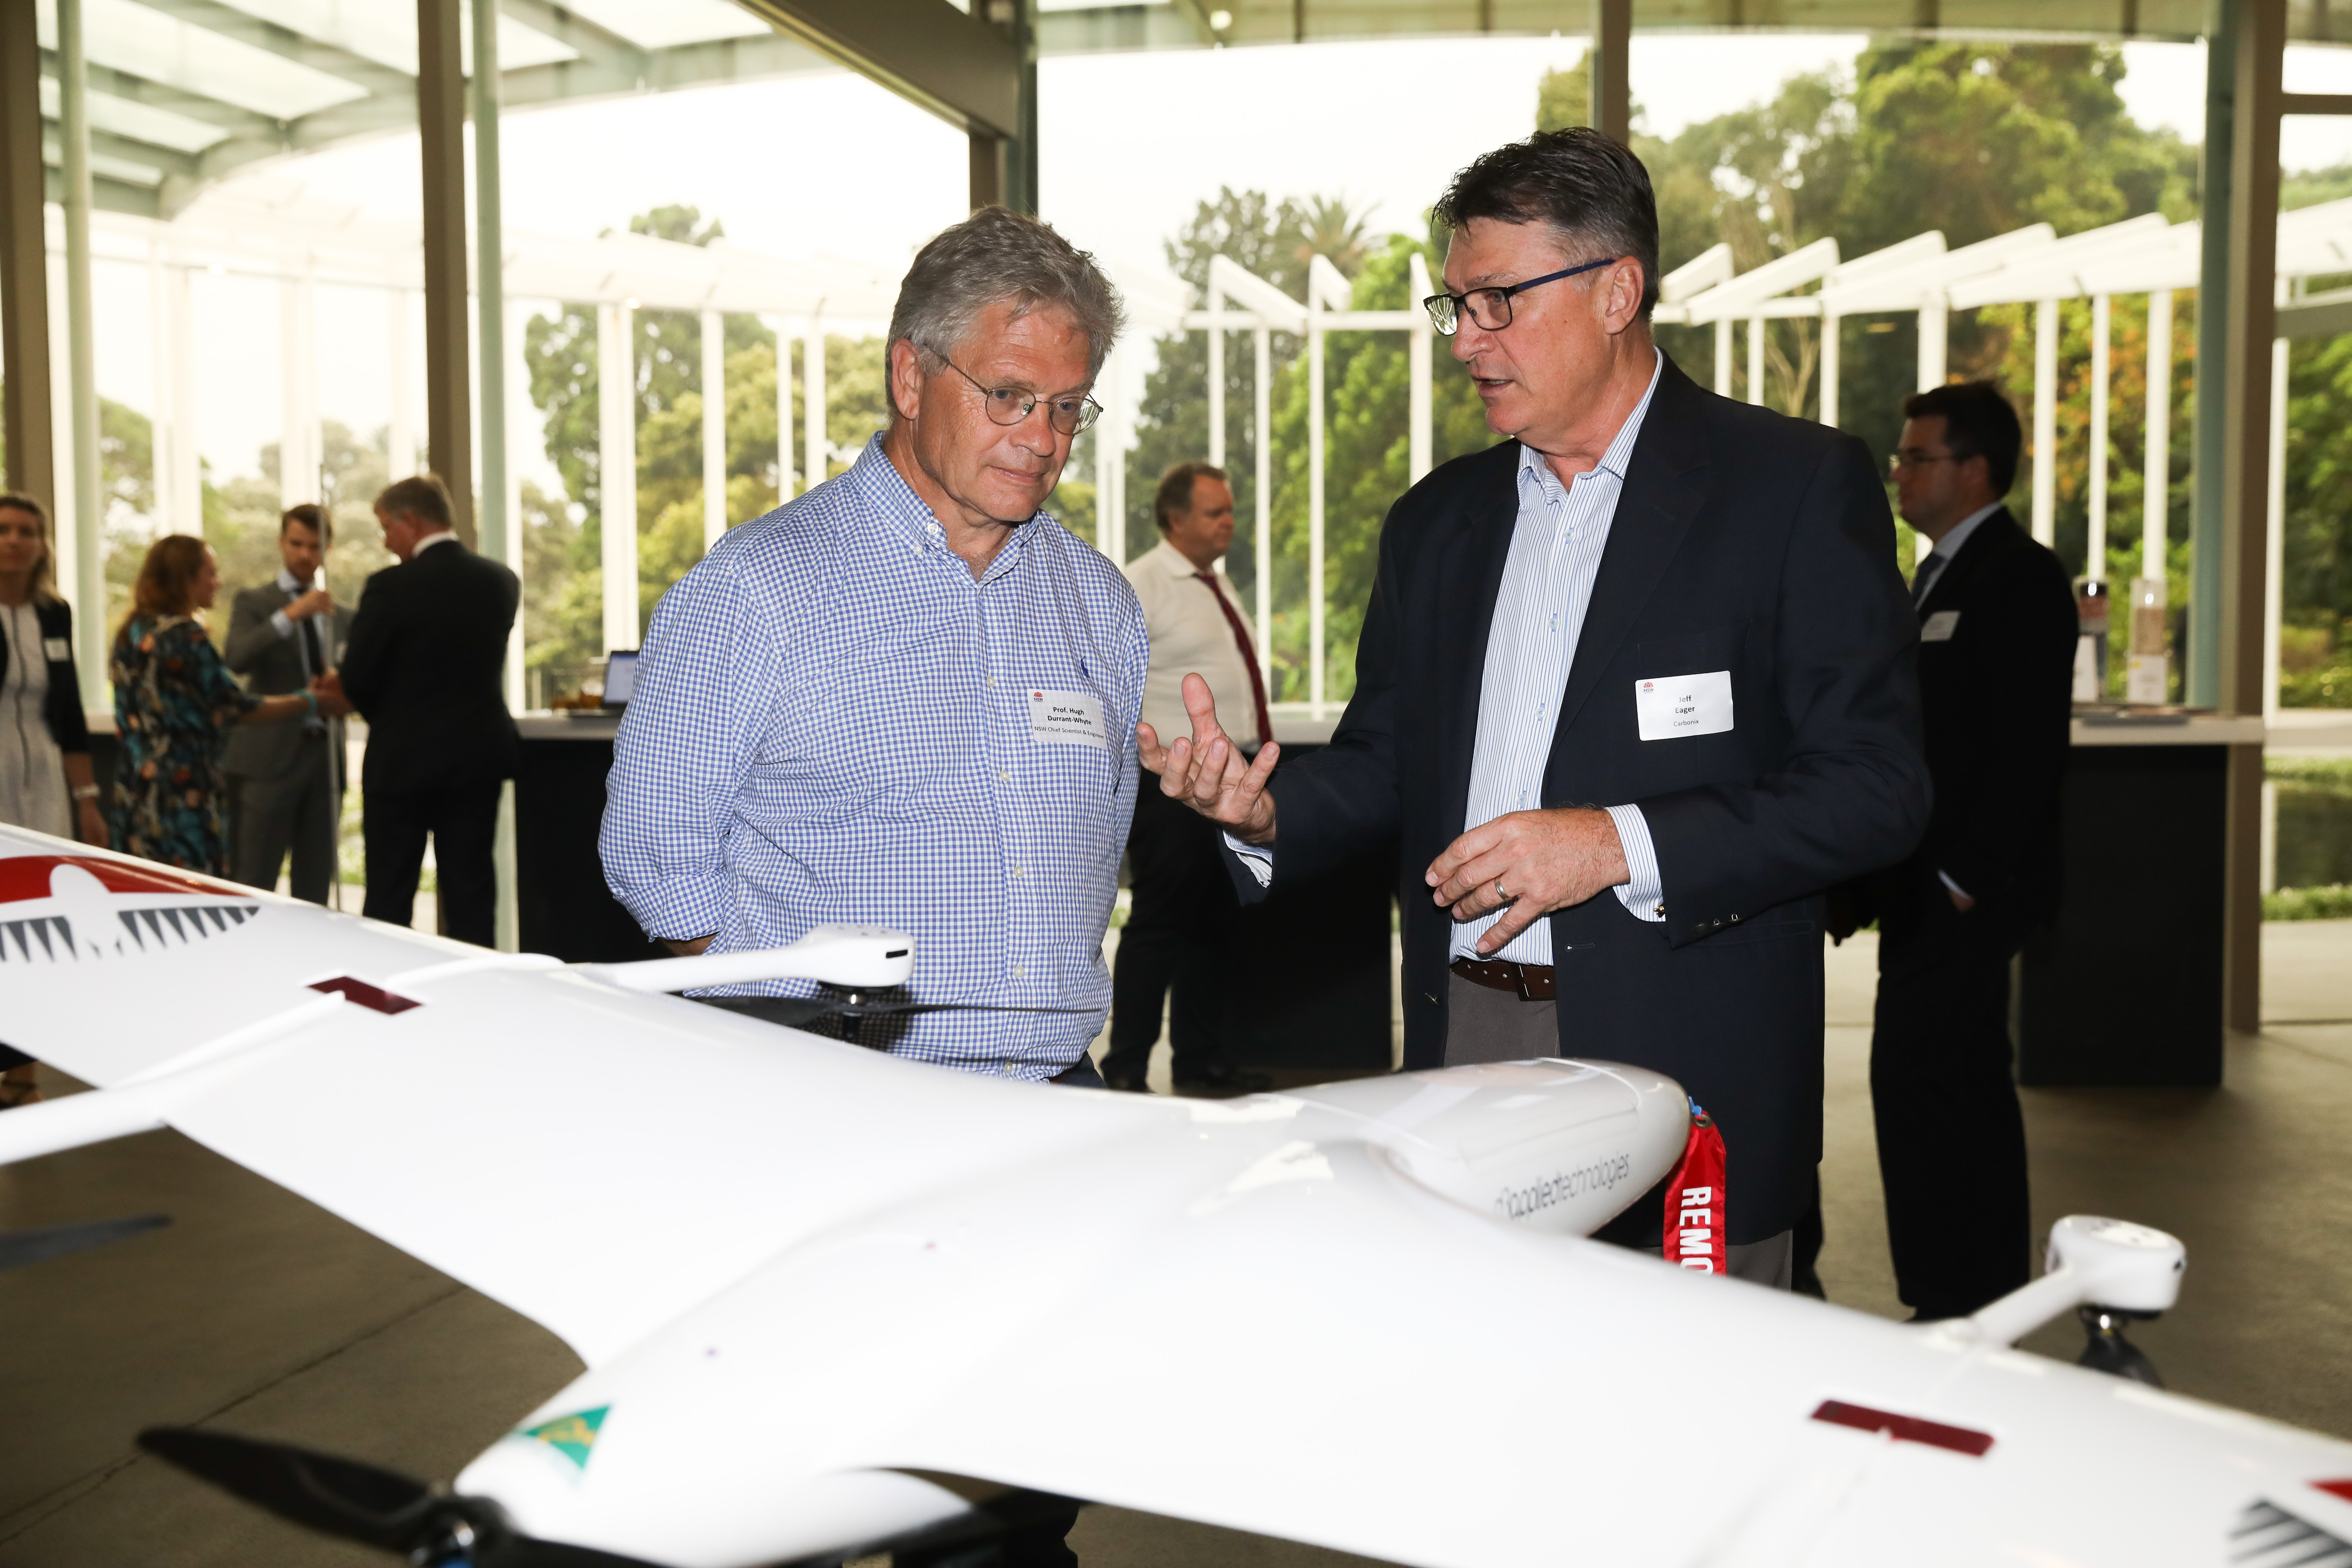 Brad Pickett from Carbonix discussing the Domani drone with Professor Durrant-Whyte